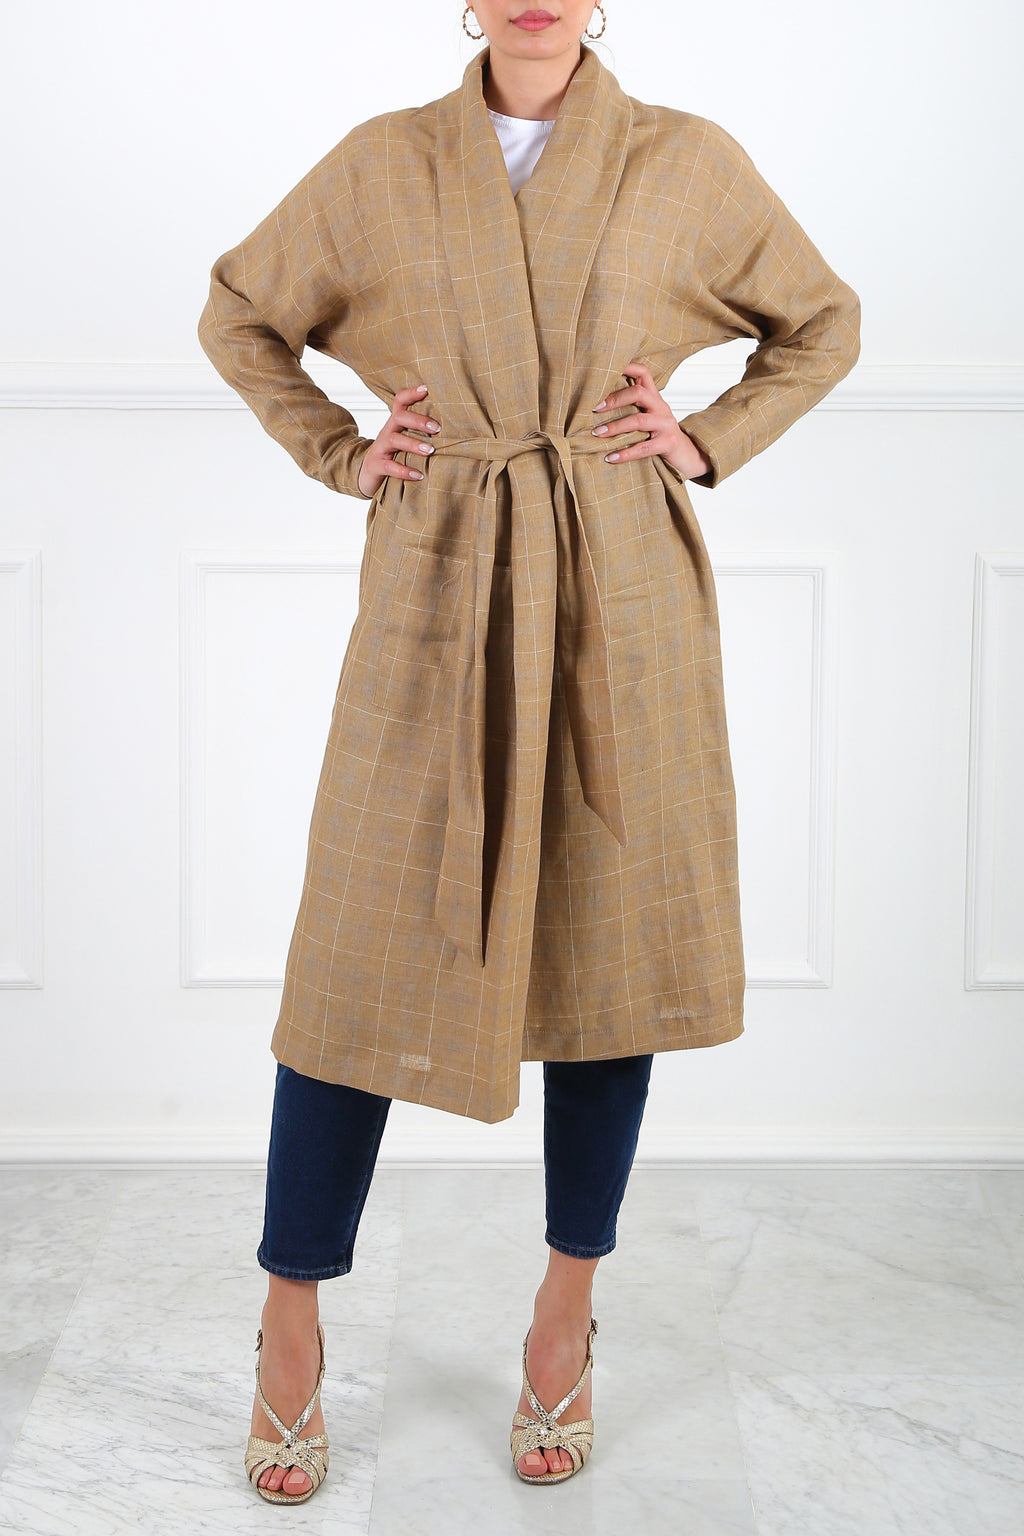 Tan Ray Linen Wrap Cardigan